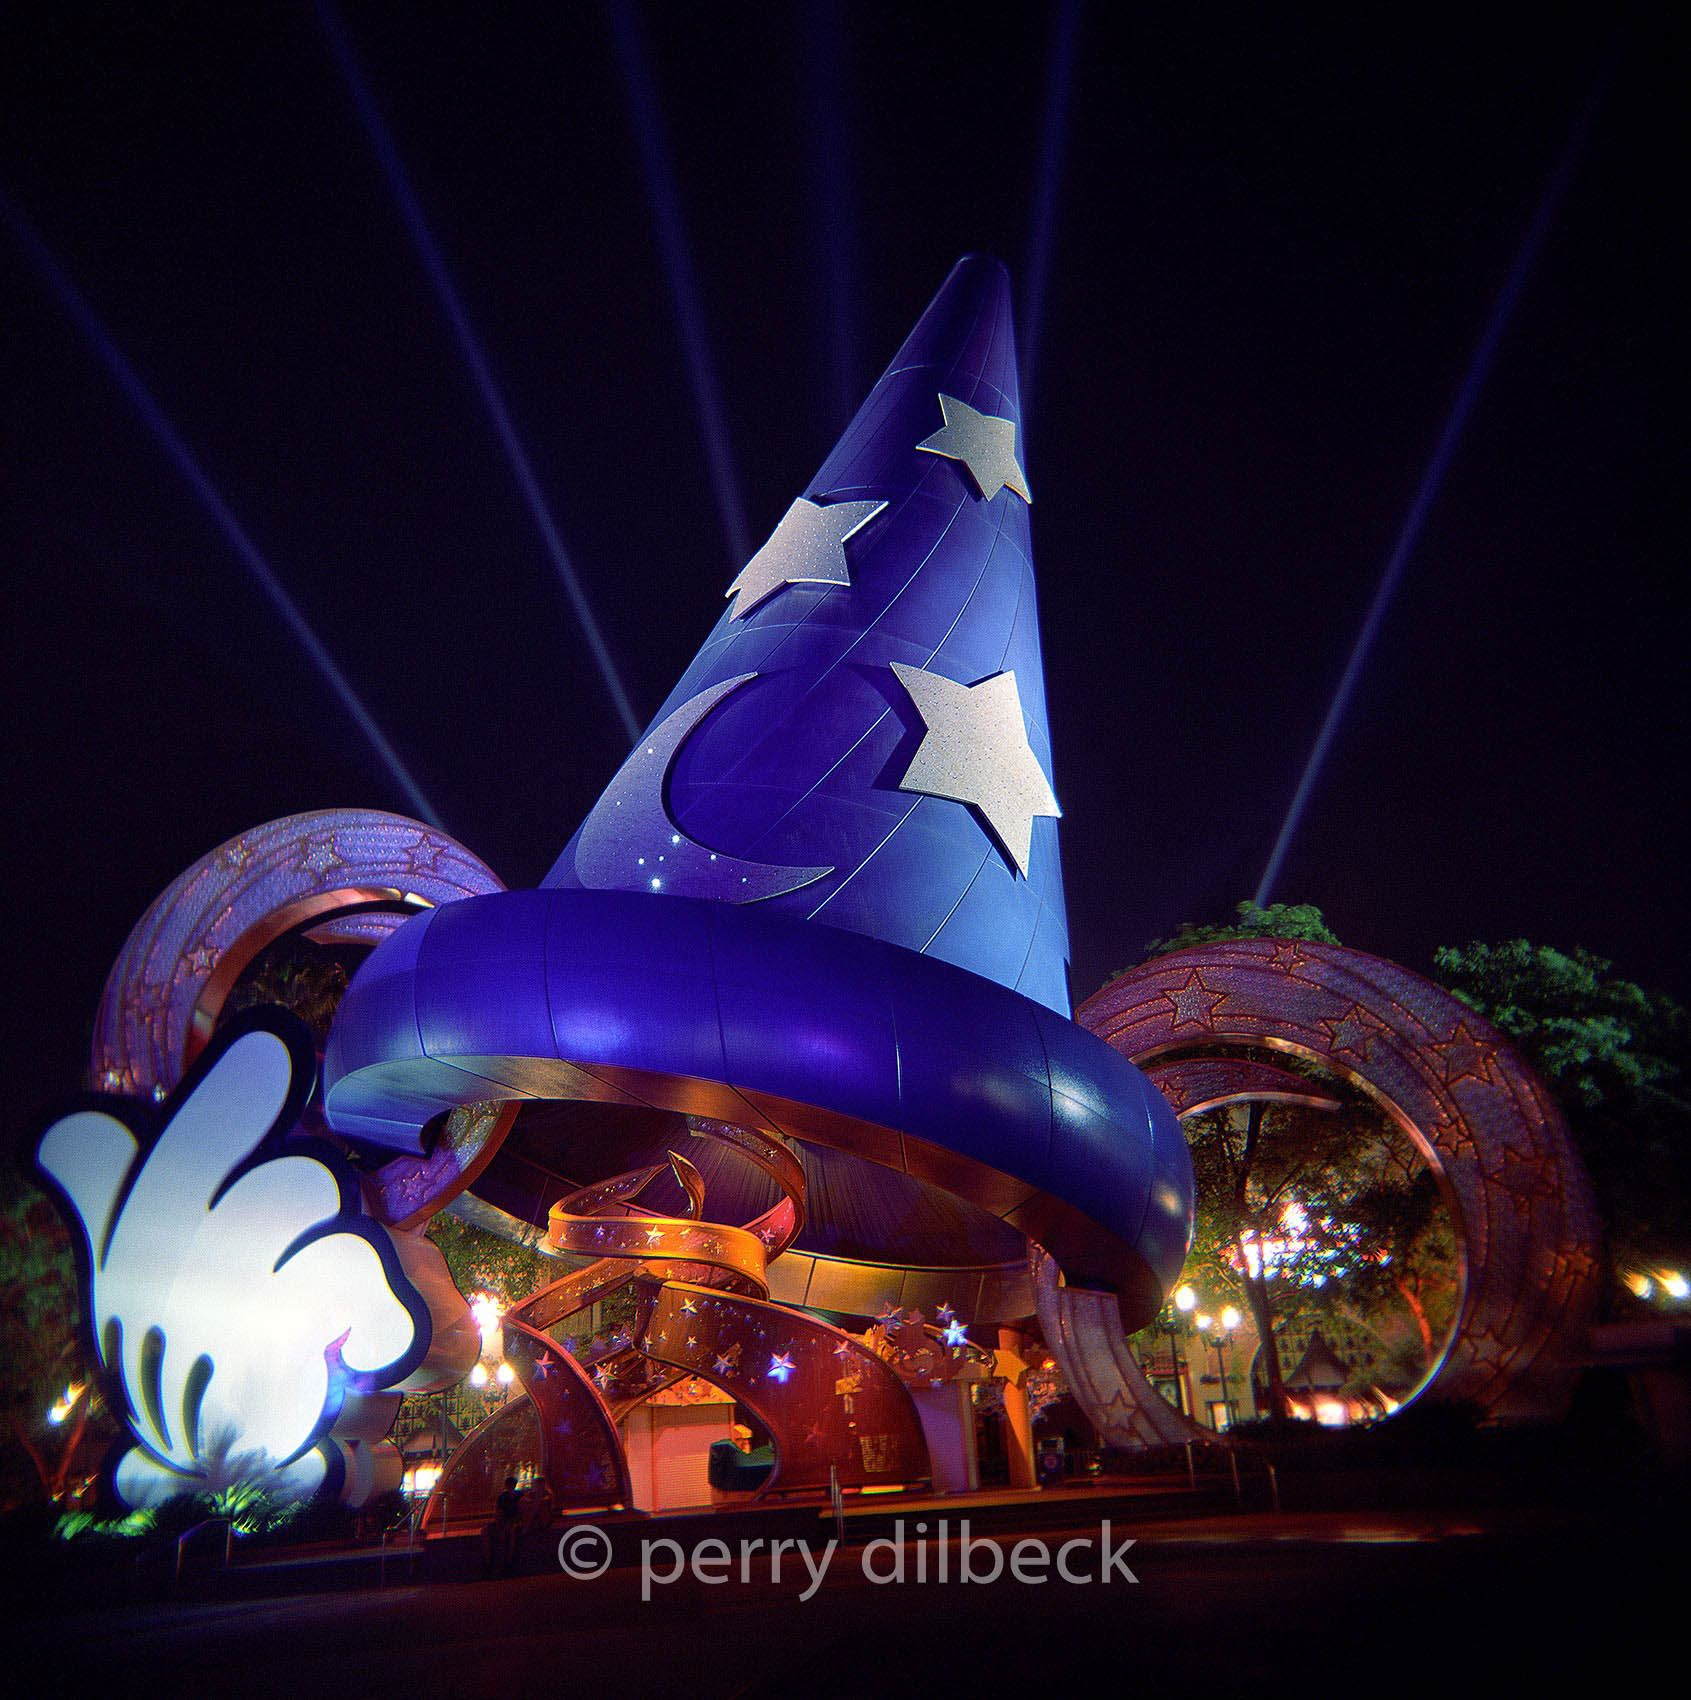 26hollywoodstudios-copy.jpg